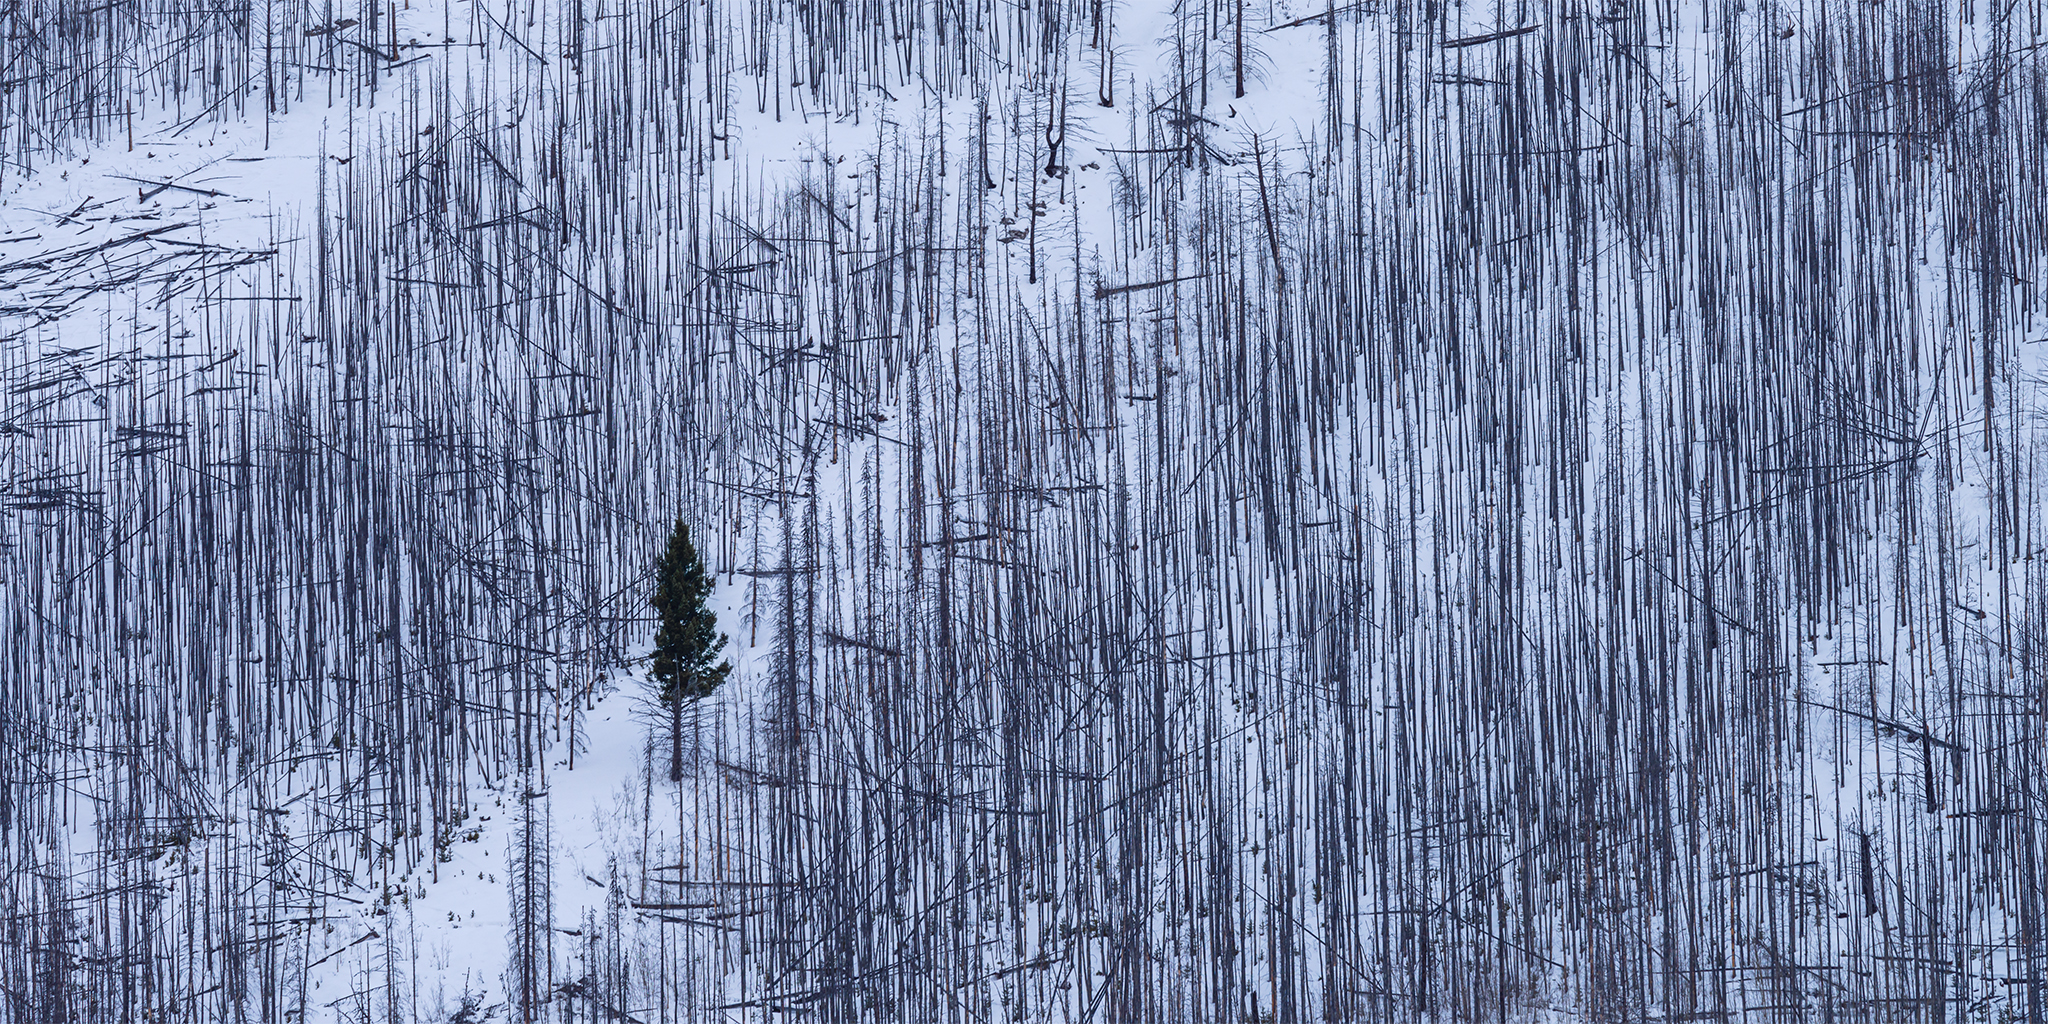 An intimate landscape photograph of a lone surviving tree in the middle of a burnt forest at lake Minnewanka, Alberta